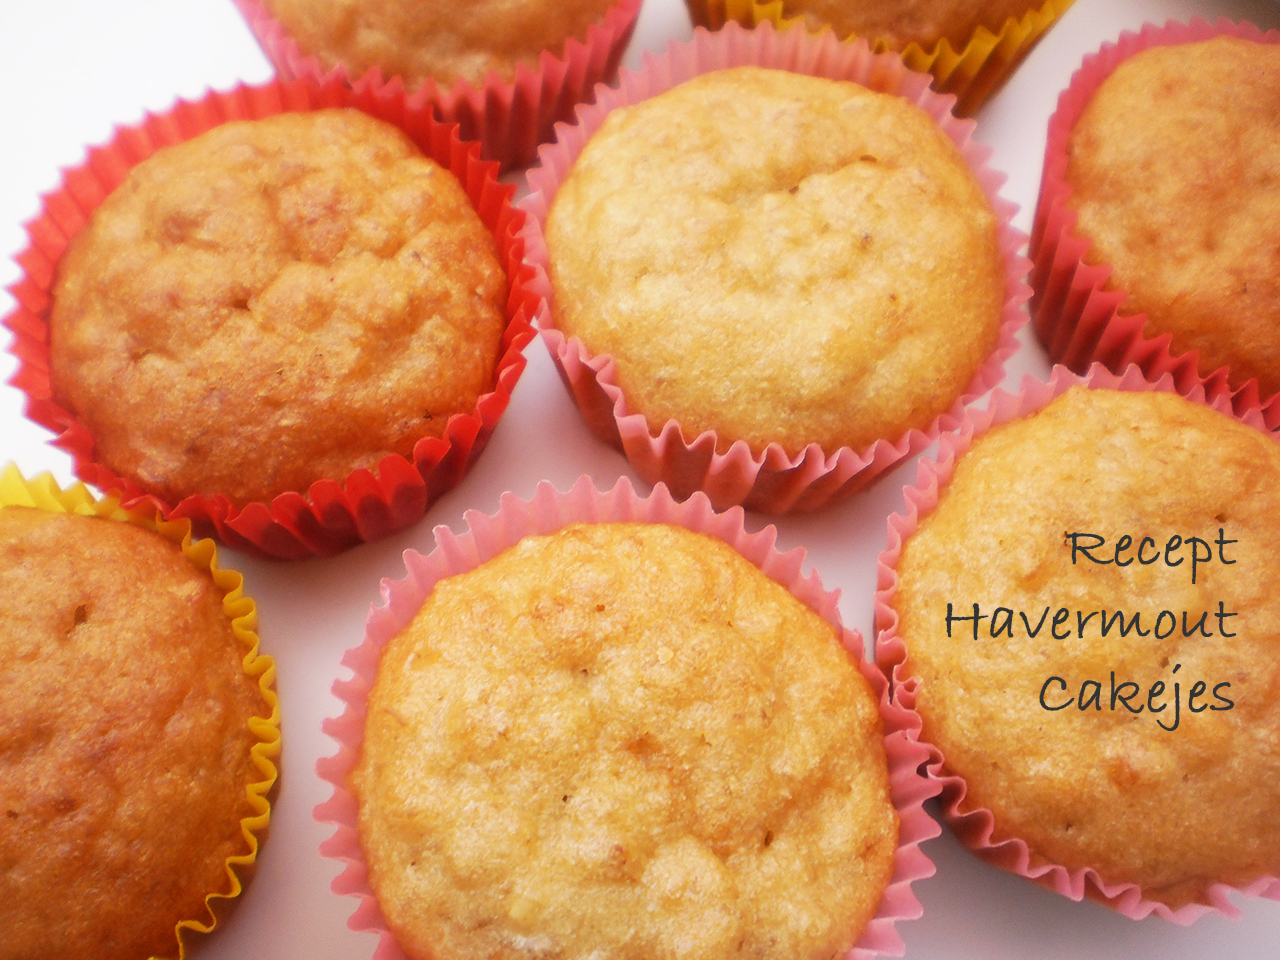 Recept: Havermout cakejes!